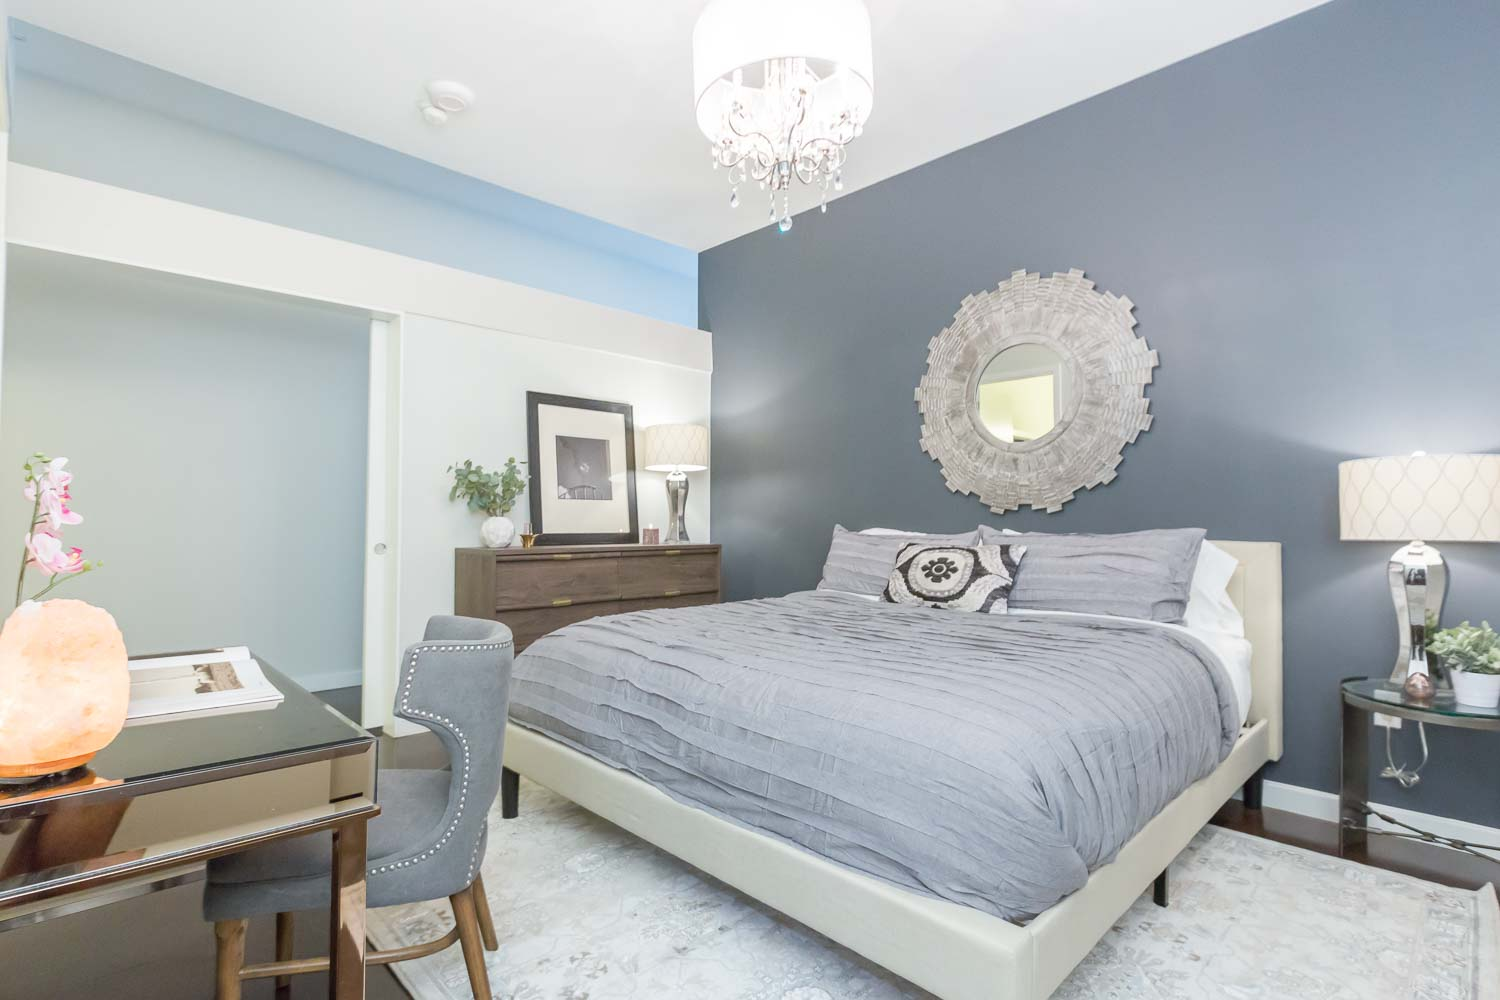 """The master bedroom does not have a window, so it was important that we added """"depth"""" and interest. We did this by painting the headboard wall with Sherwin Williams Deep Space. The chandelier adds luxury as does the gray bedding, mirrored console and walnut dresser with gold accents."""